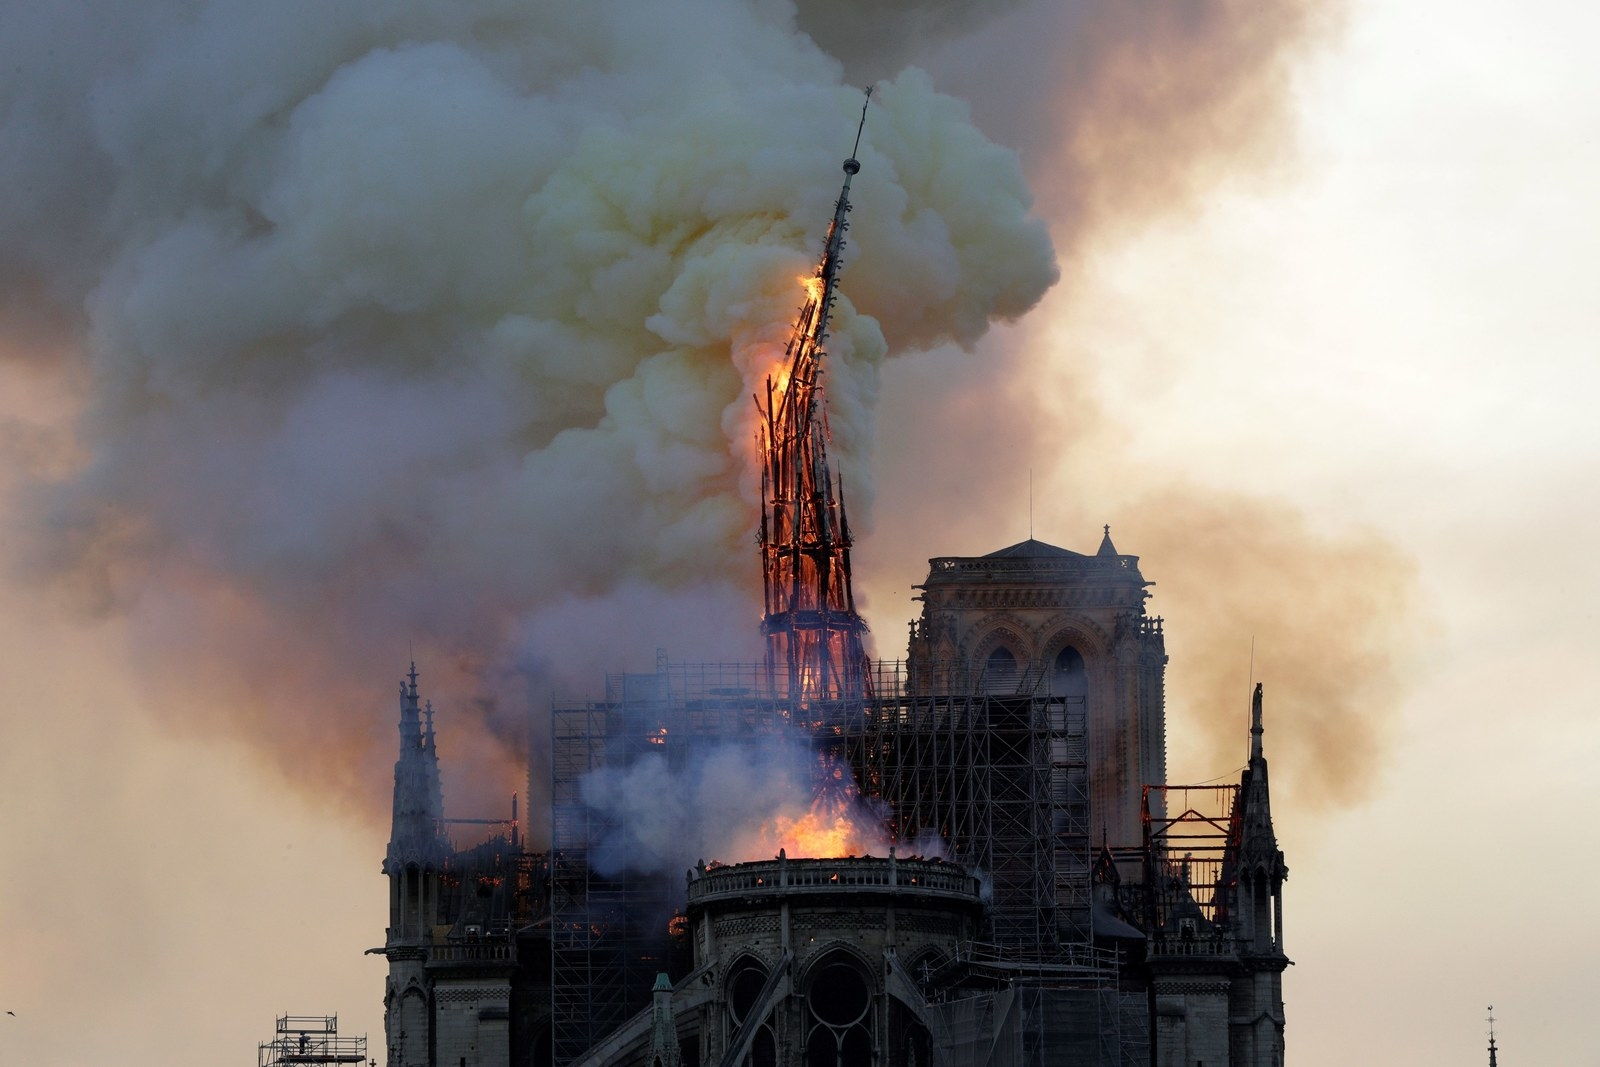 The Notre Dame Spire Collapses In Fire